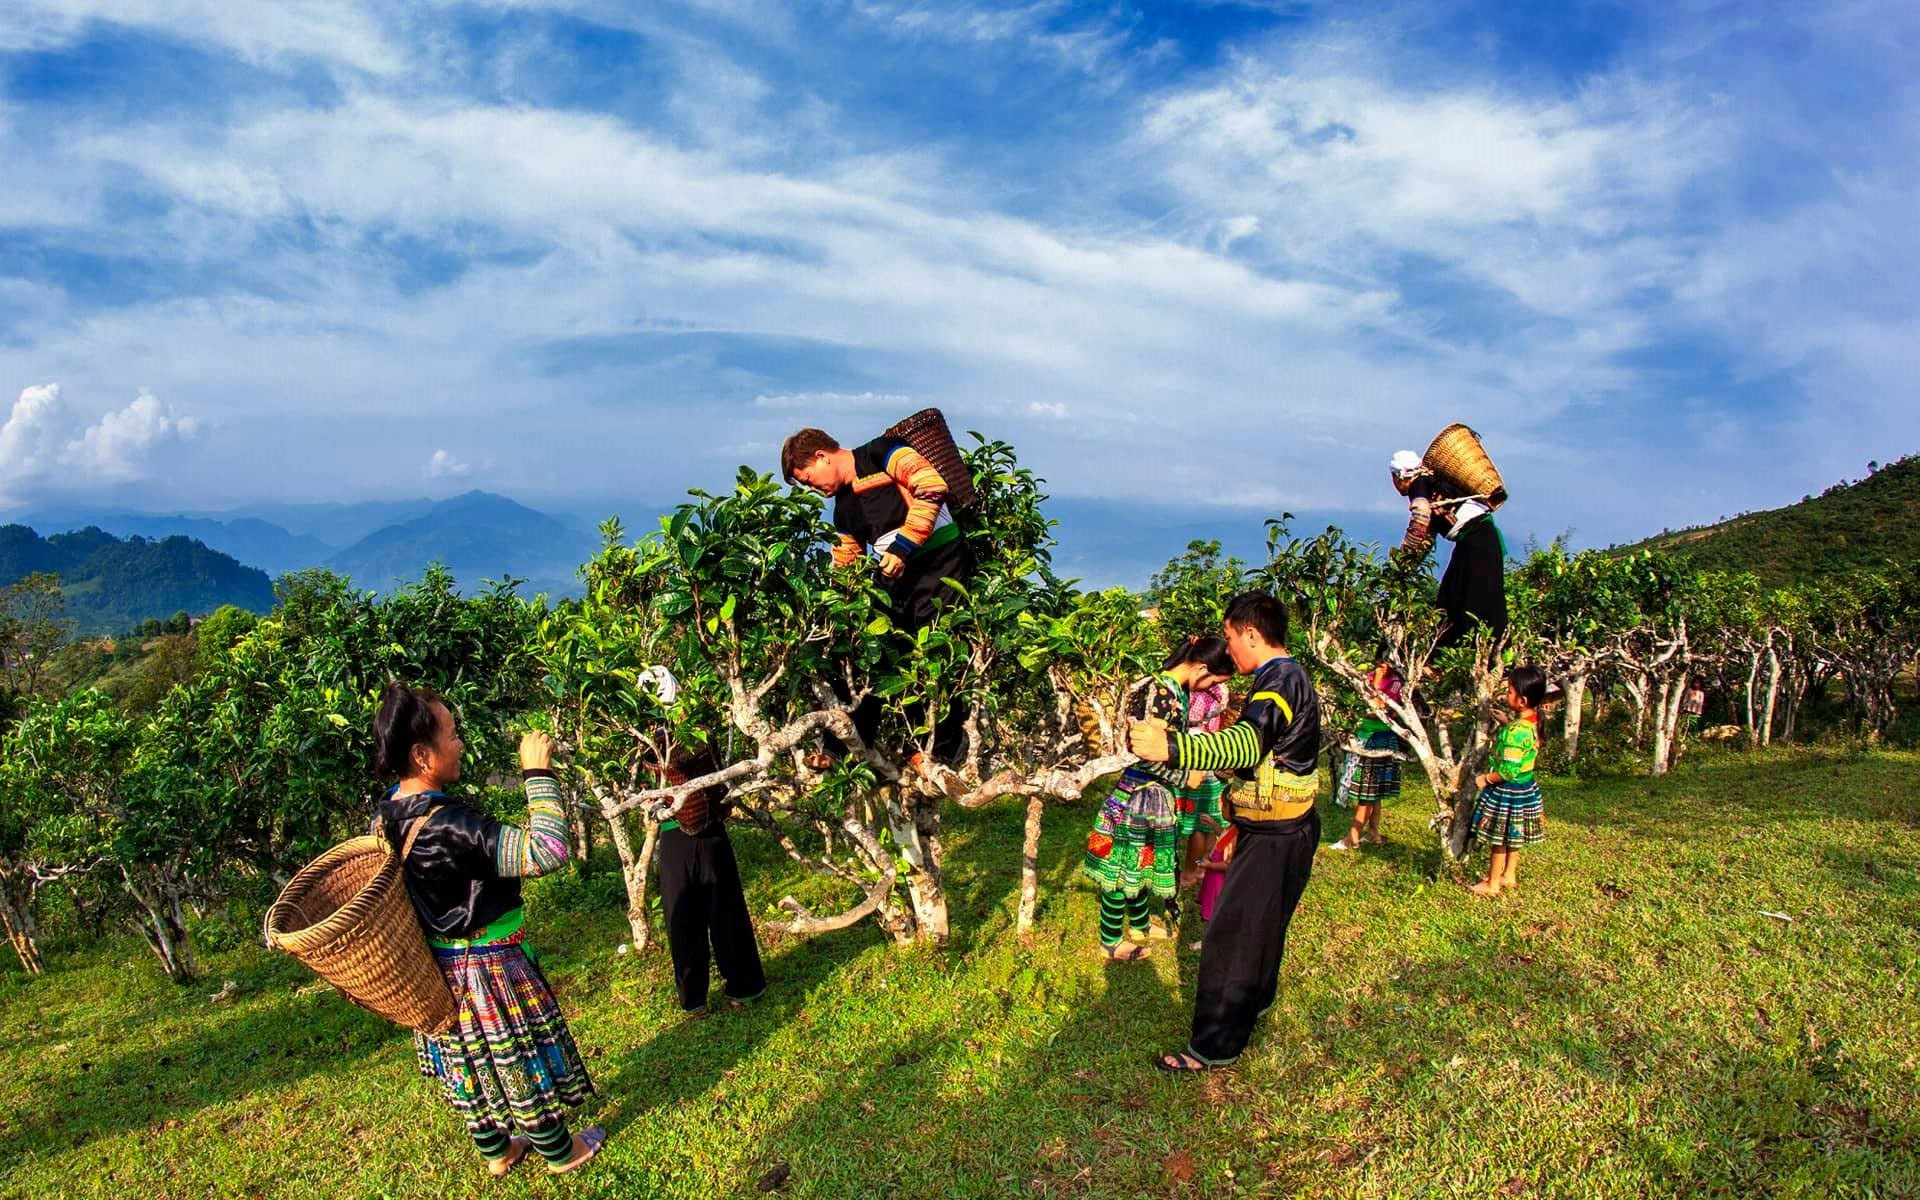 Suoi Giang gets its fame for growing over hundred years old tea trees, which provide the famous Shan Tuyet tea.